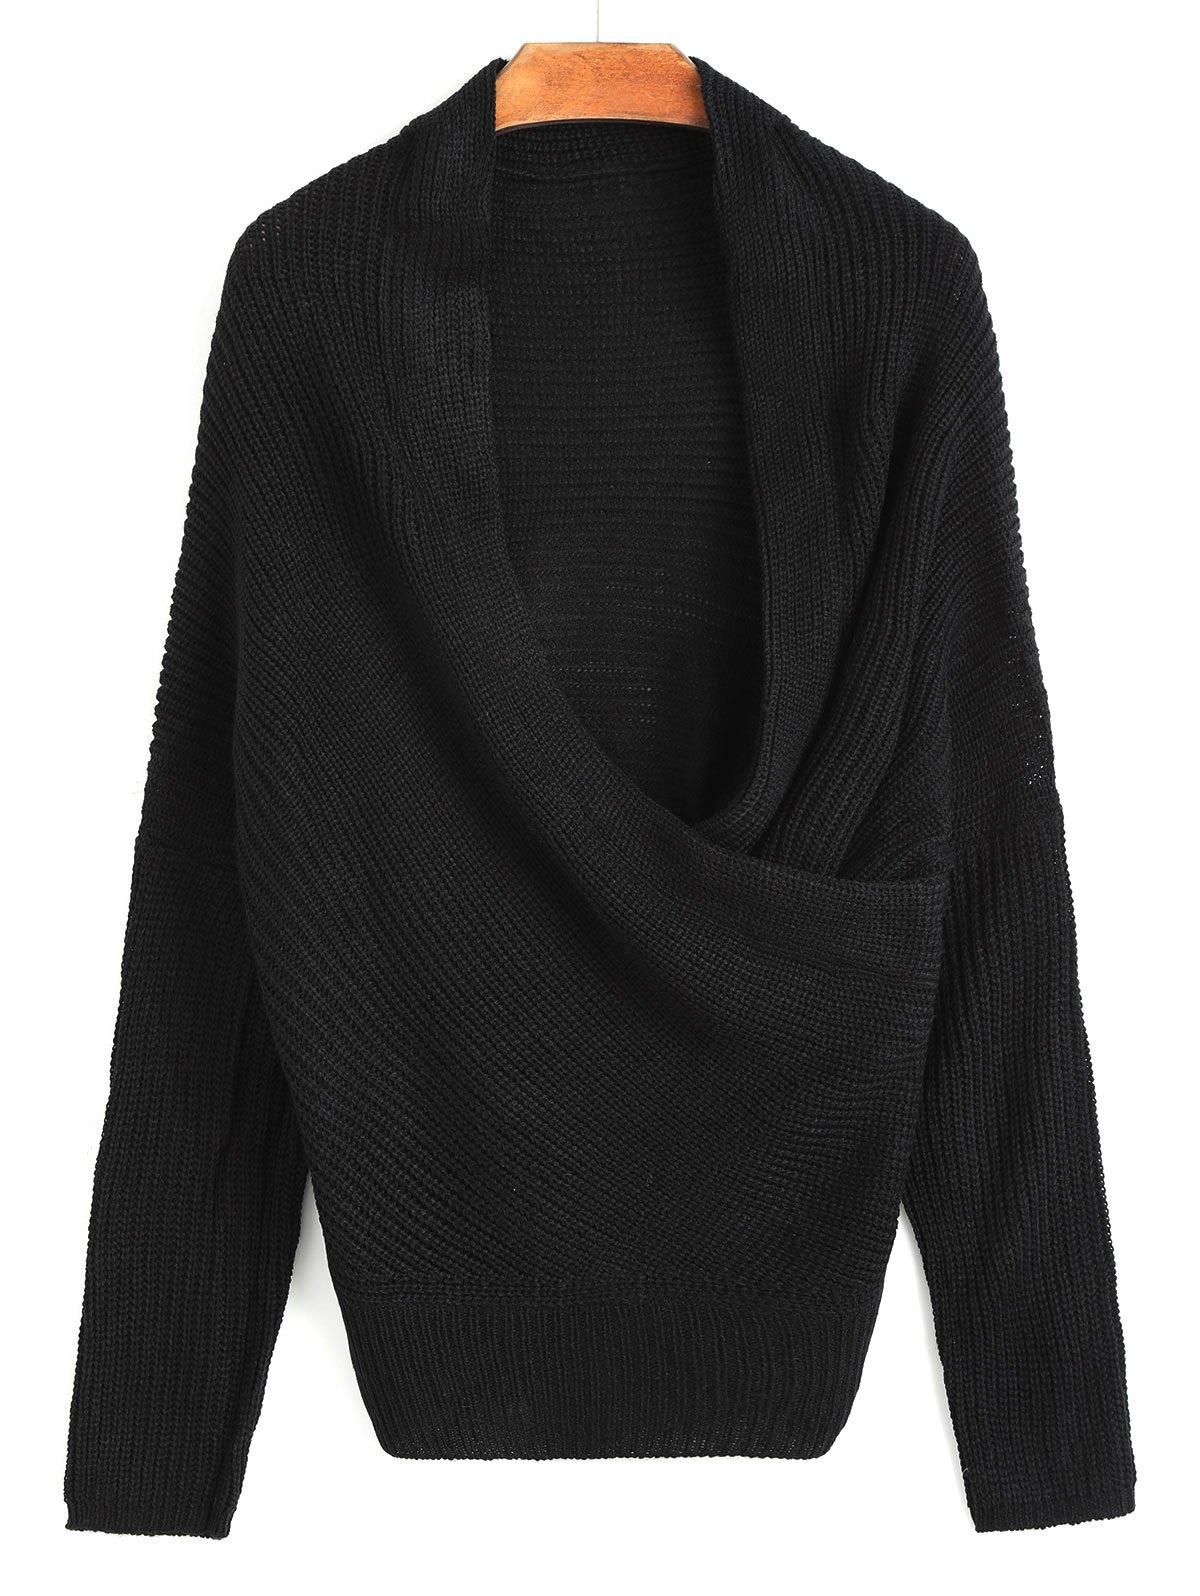 Ribbed Plunging Neck Wrap Sweater - BLACK ONE SIZE